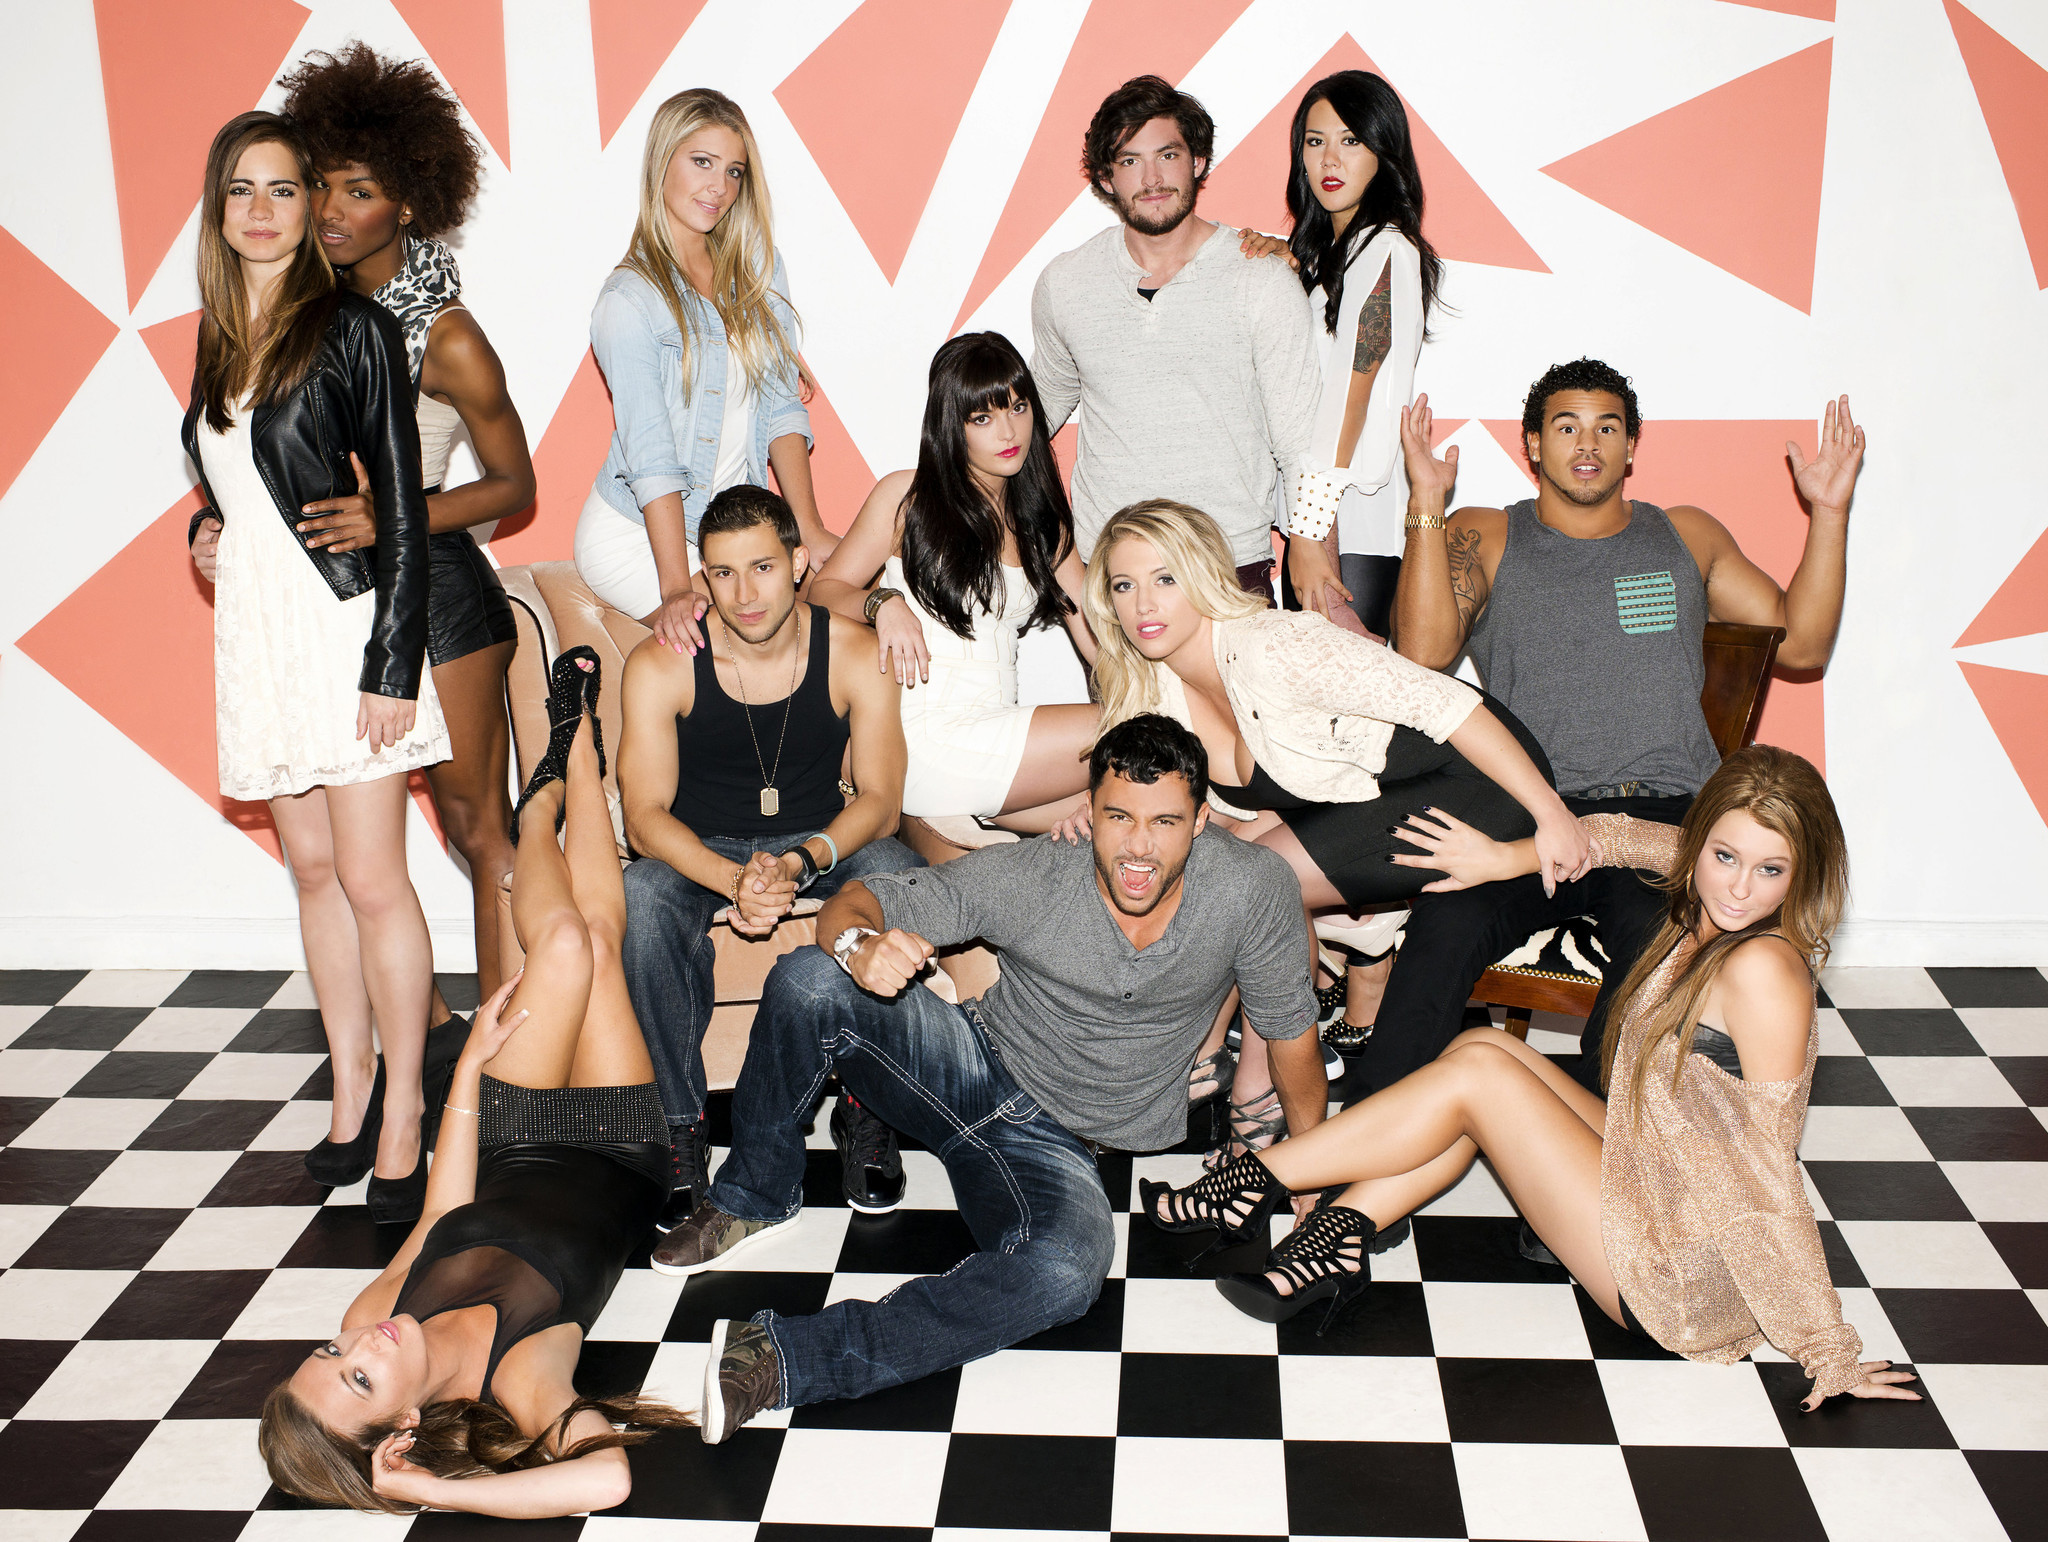 Mtv holding real world casting call next week in chicago chicago tribune